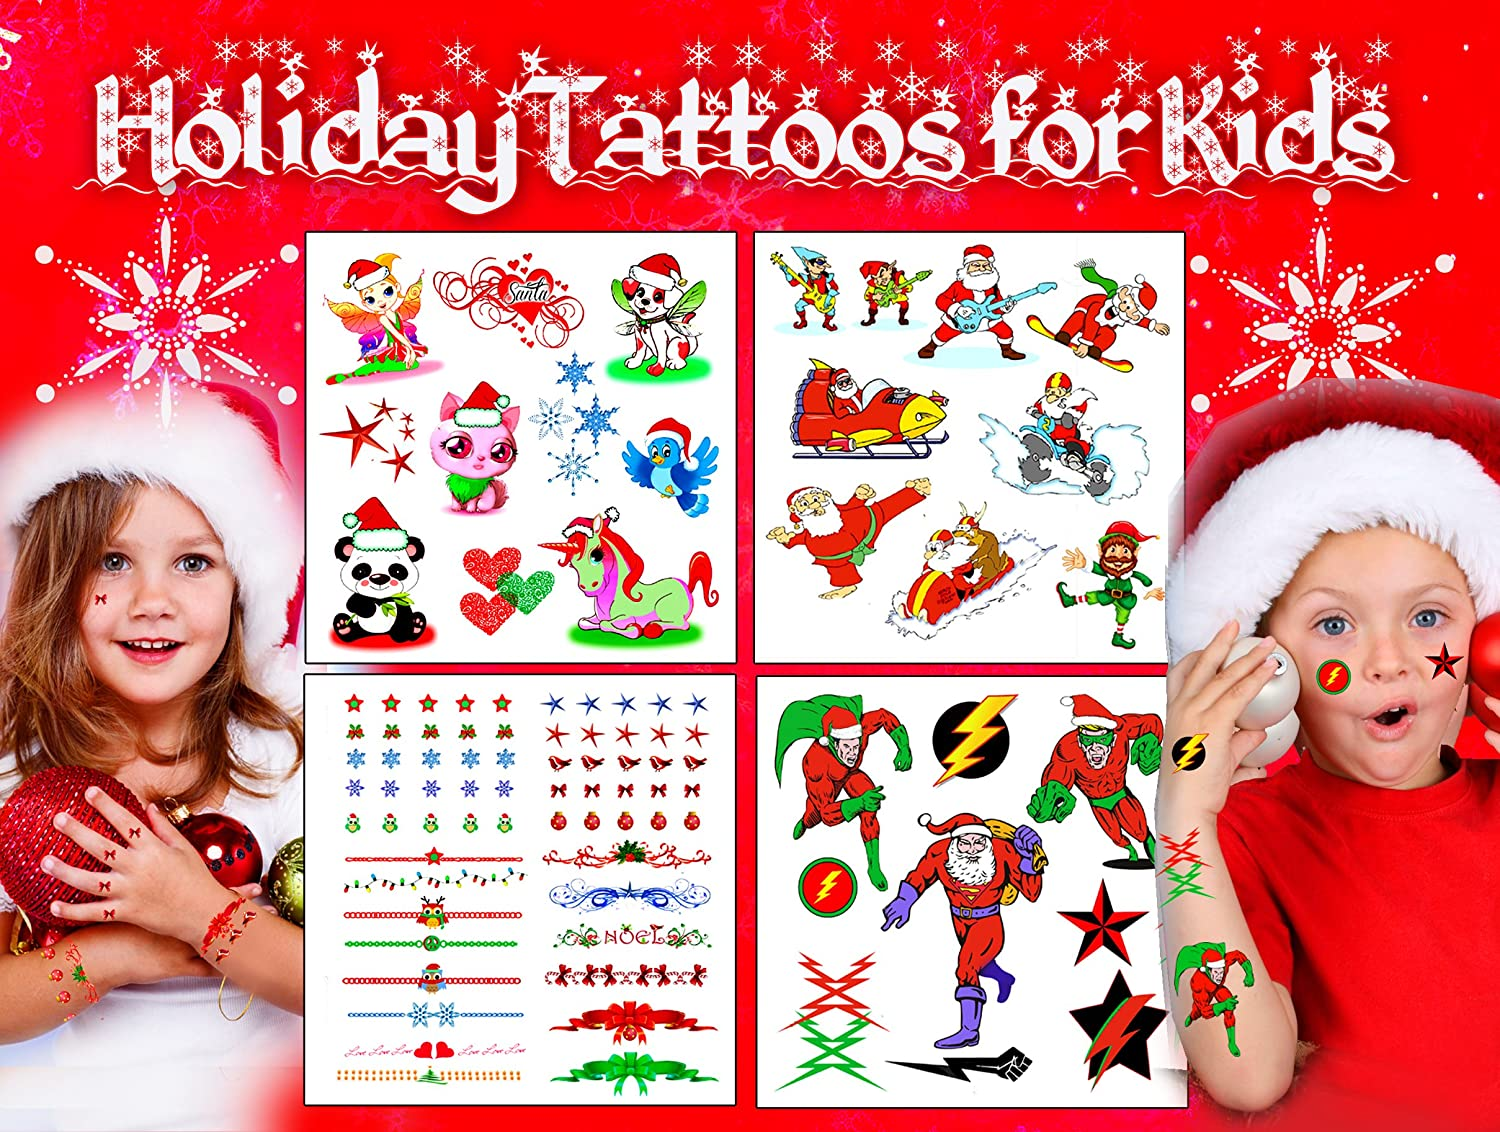 Christmas HolidayTattoos for Kids